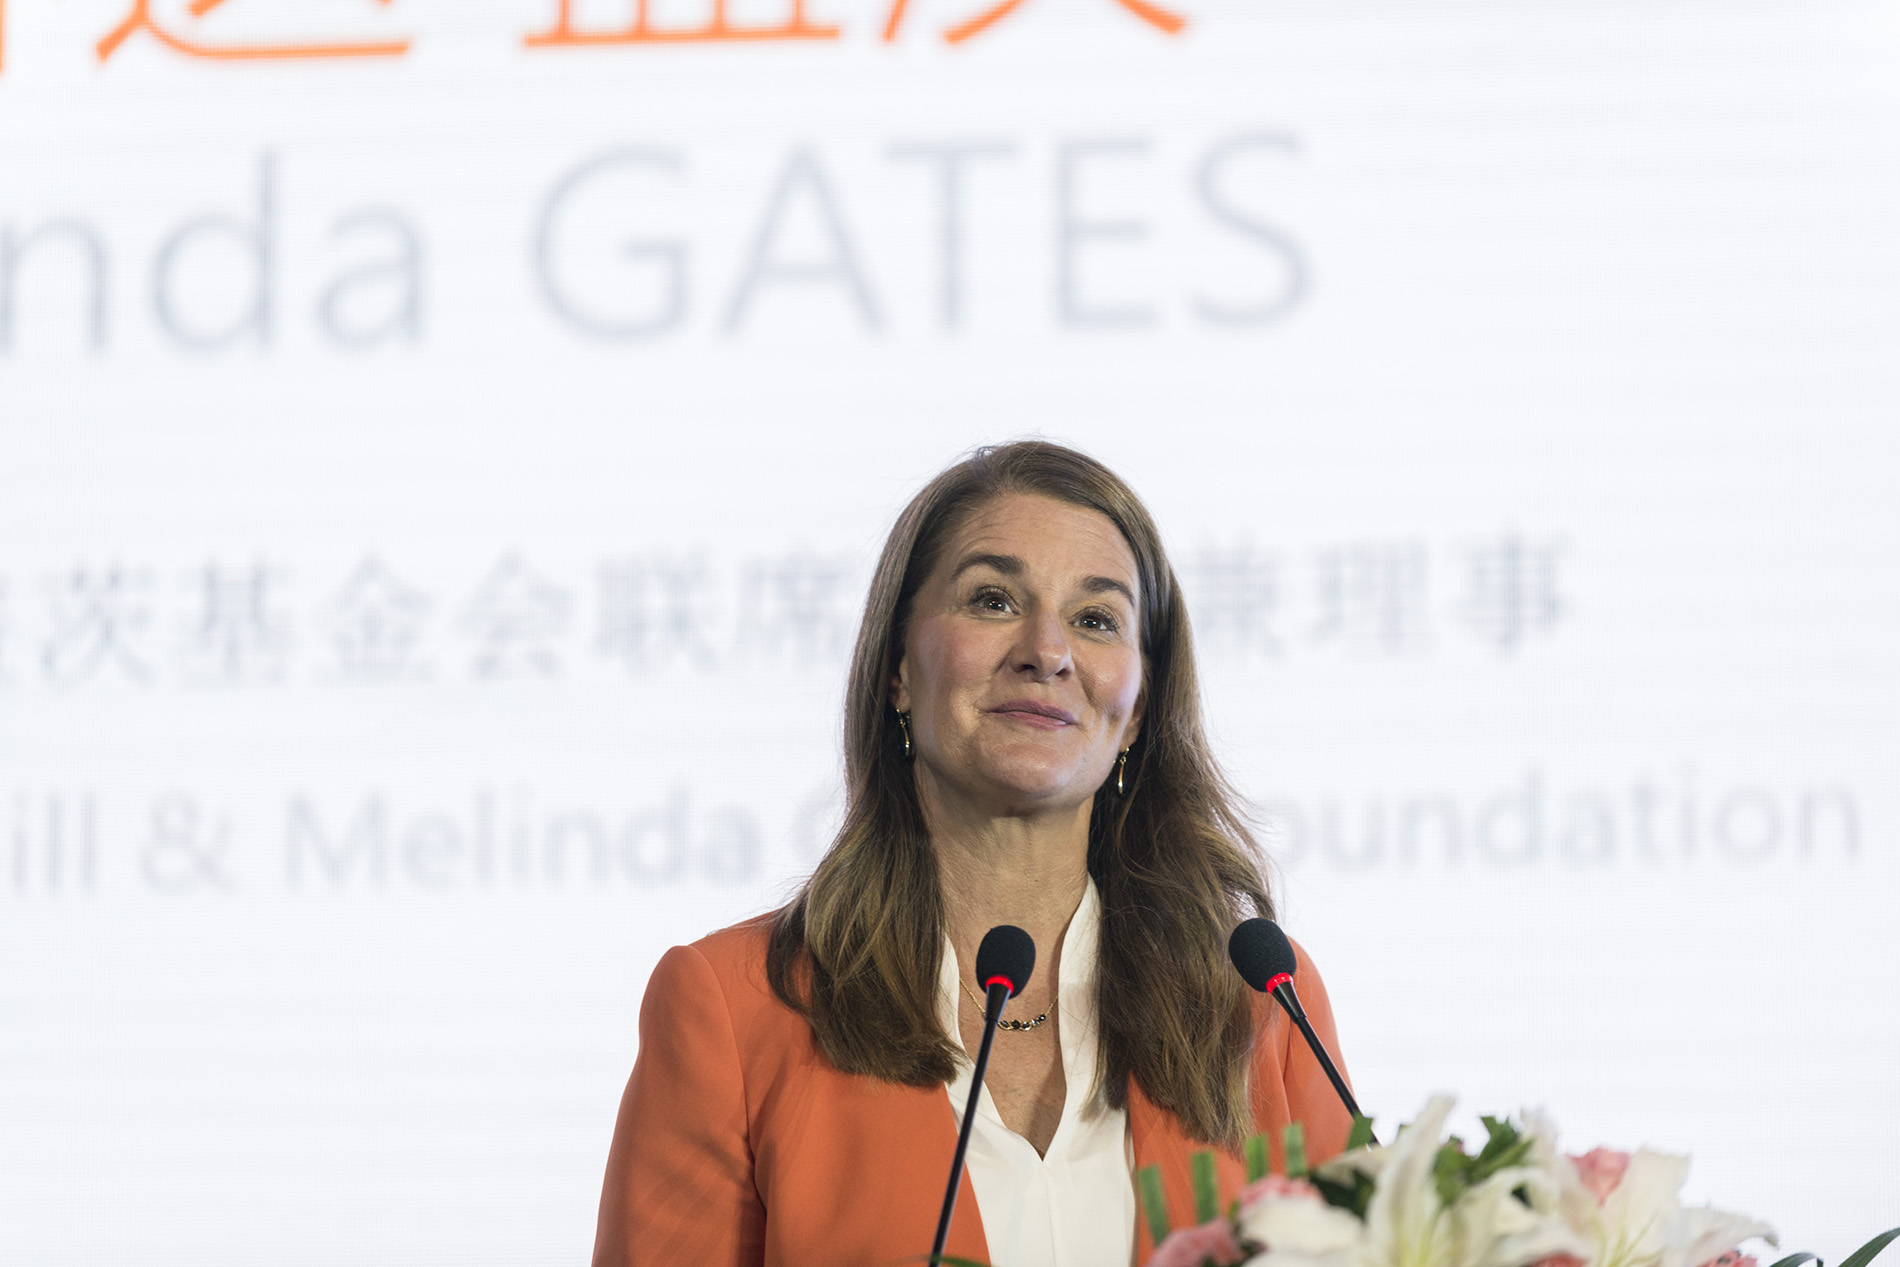 Melinda delivering remarks at panel discussion 2 - 网页版.jpg